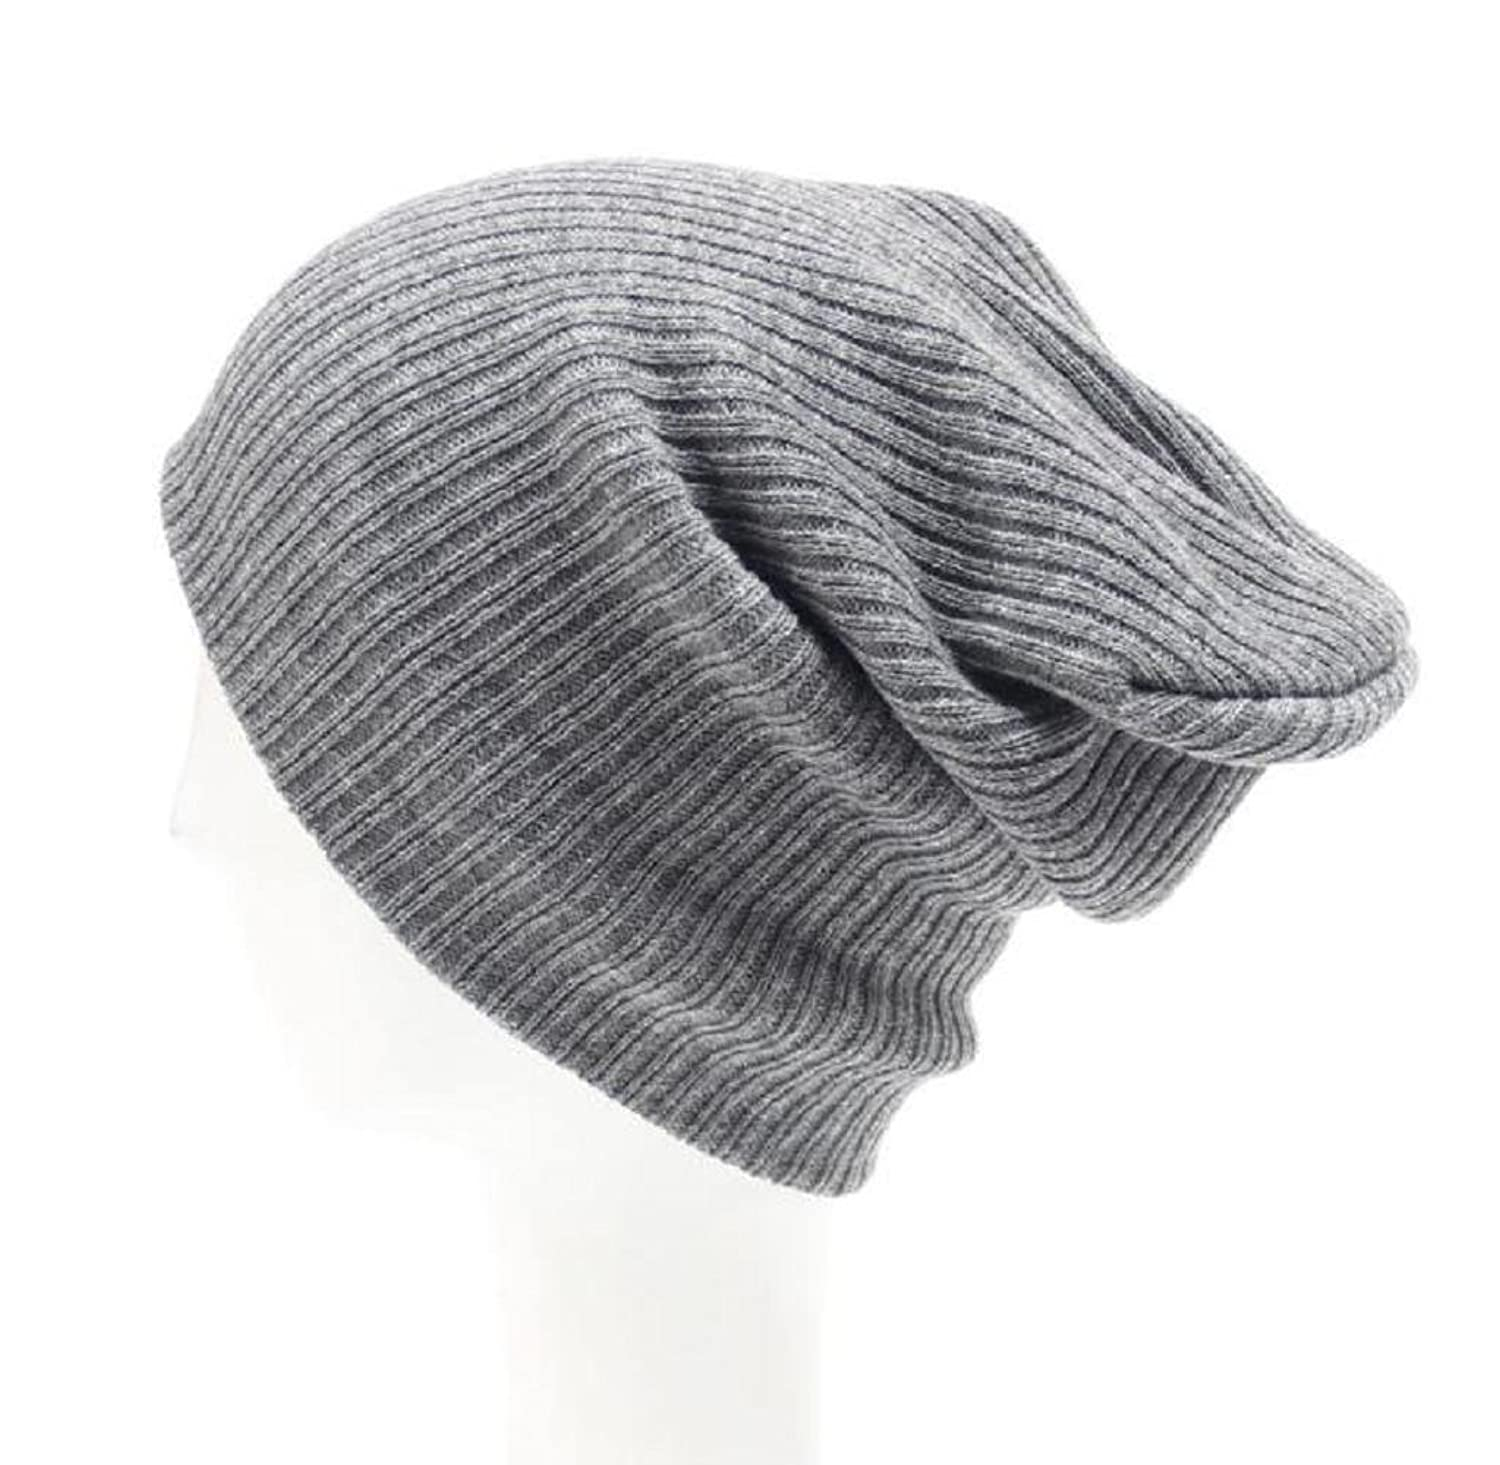 Covermason Männer Frauen Hut Beanie Stricken Ski Cap Hip-Hop Kappe Winter warm Unisex Wollmütze